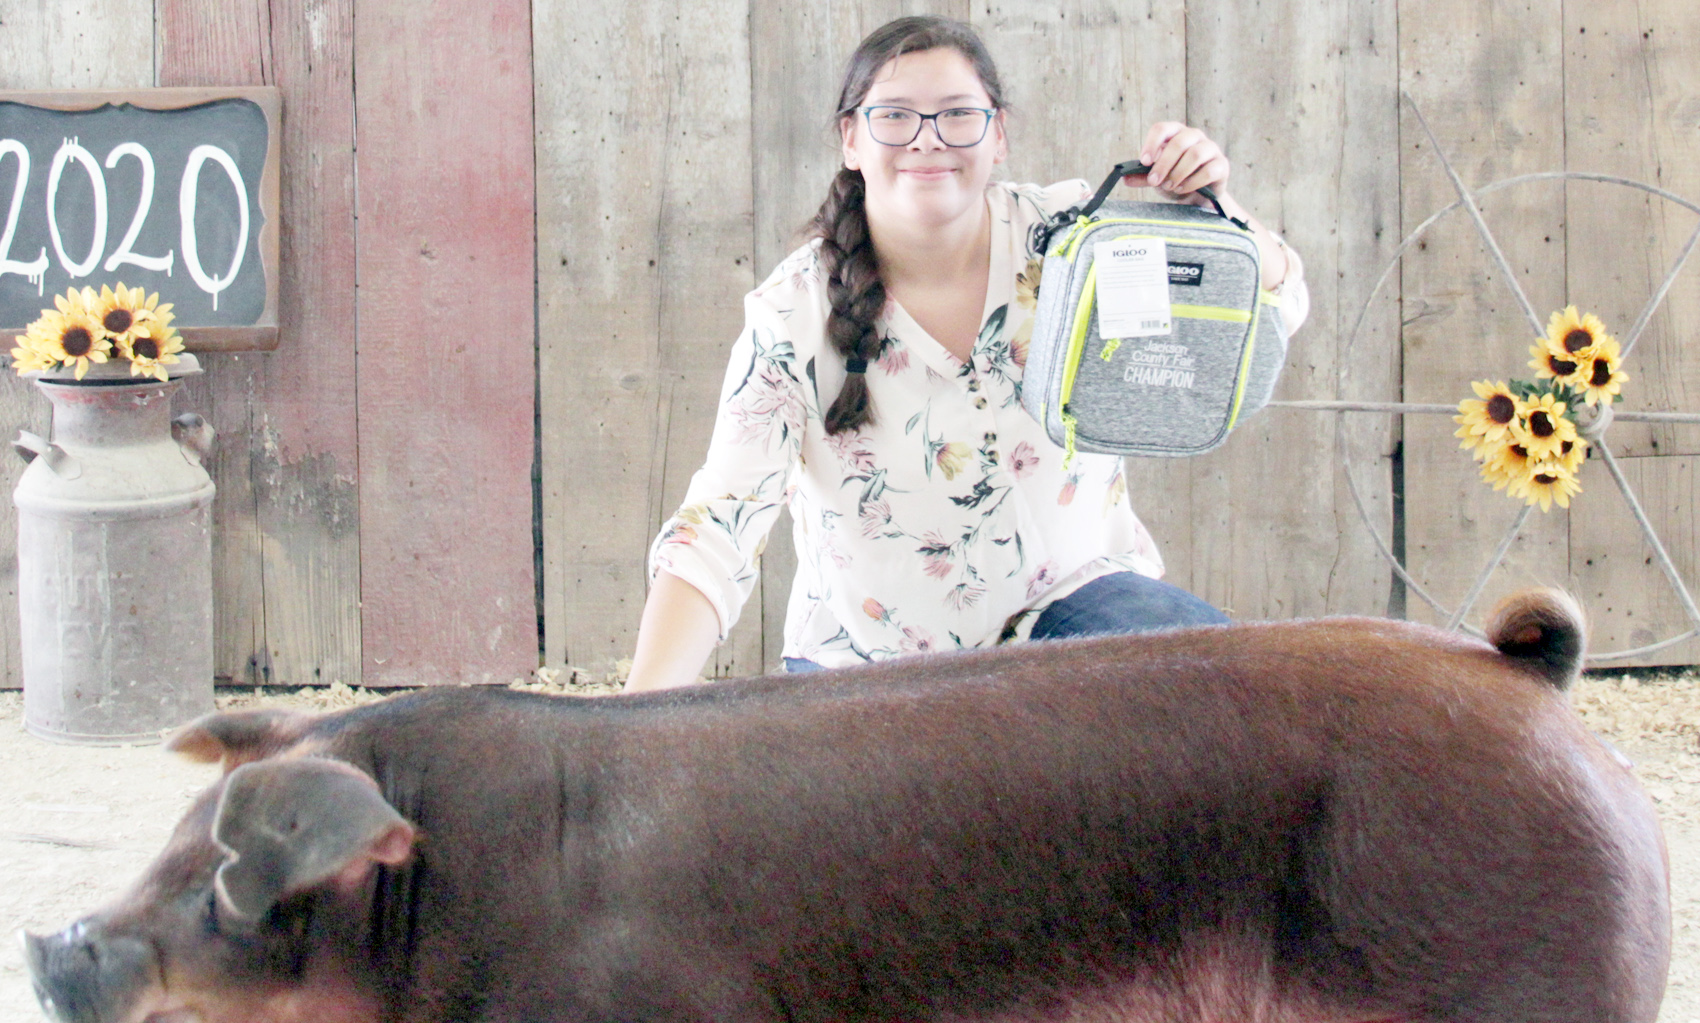 Kailei Mitchell of the Mayetta Mustangs 4-H Club showed the Champion Duroc market hog at the 2020 Jackson County Fair.